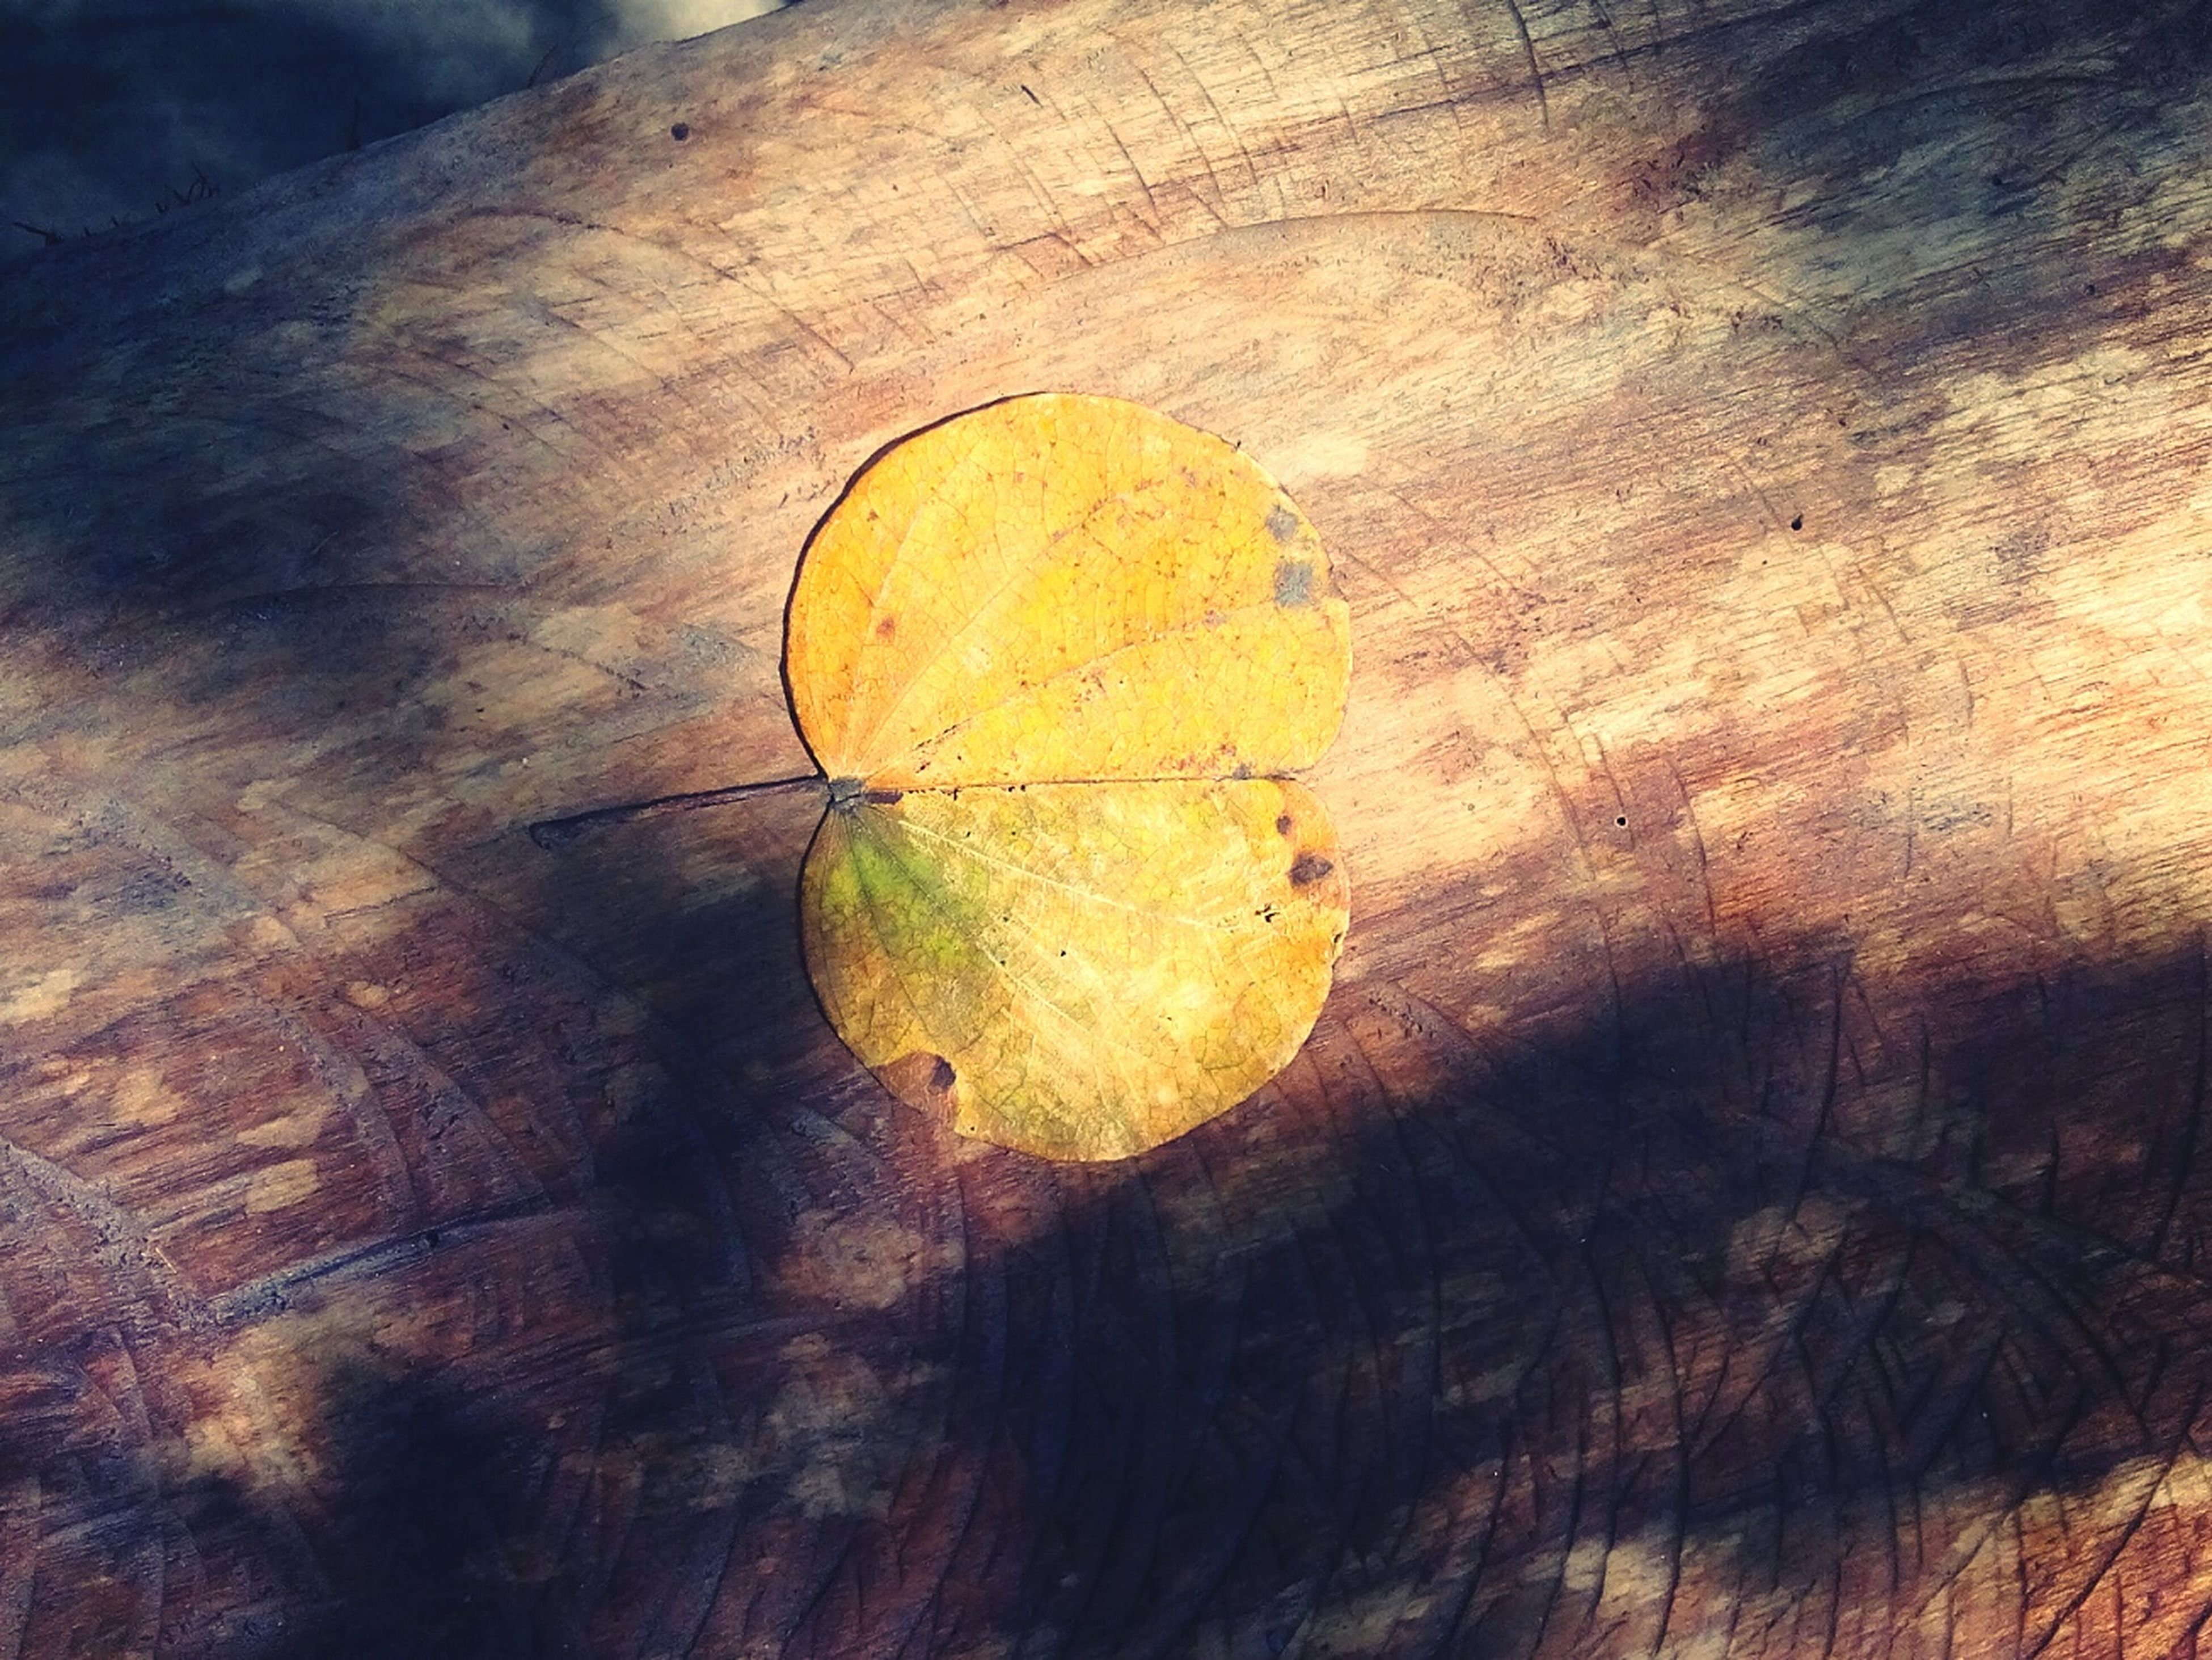 nature, close-up, growth, tree, yellow, no people, outdoors, backgrounds, tree ring, beauty in nature, day